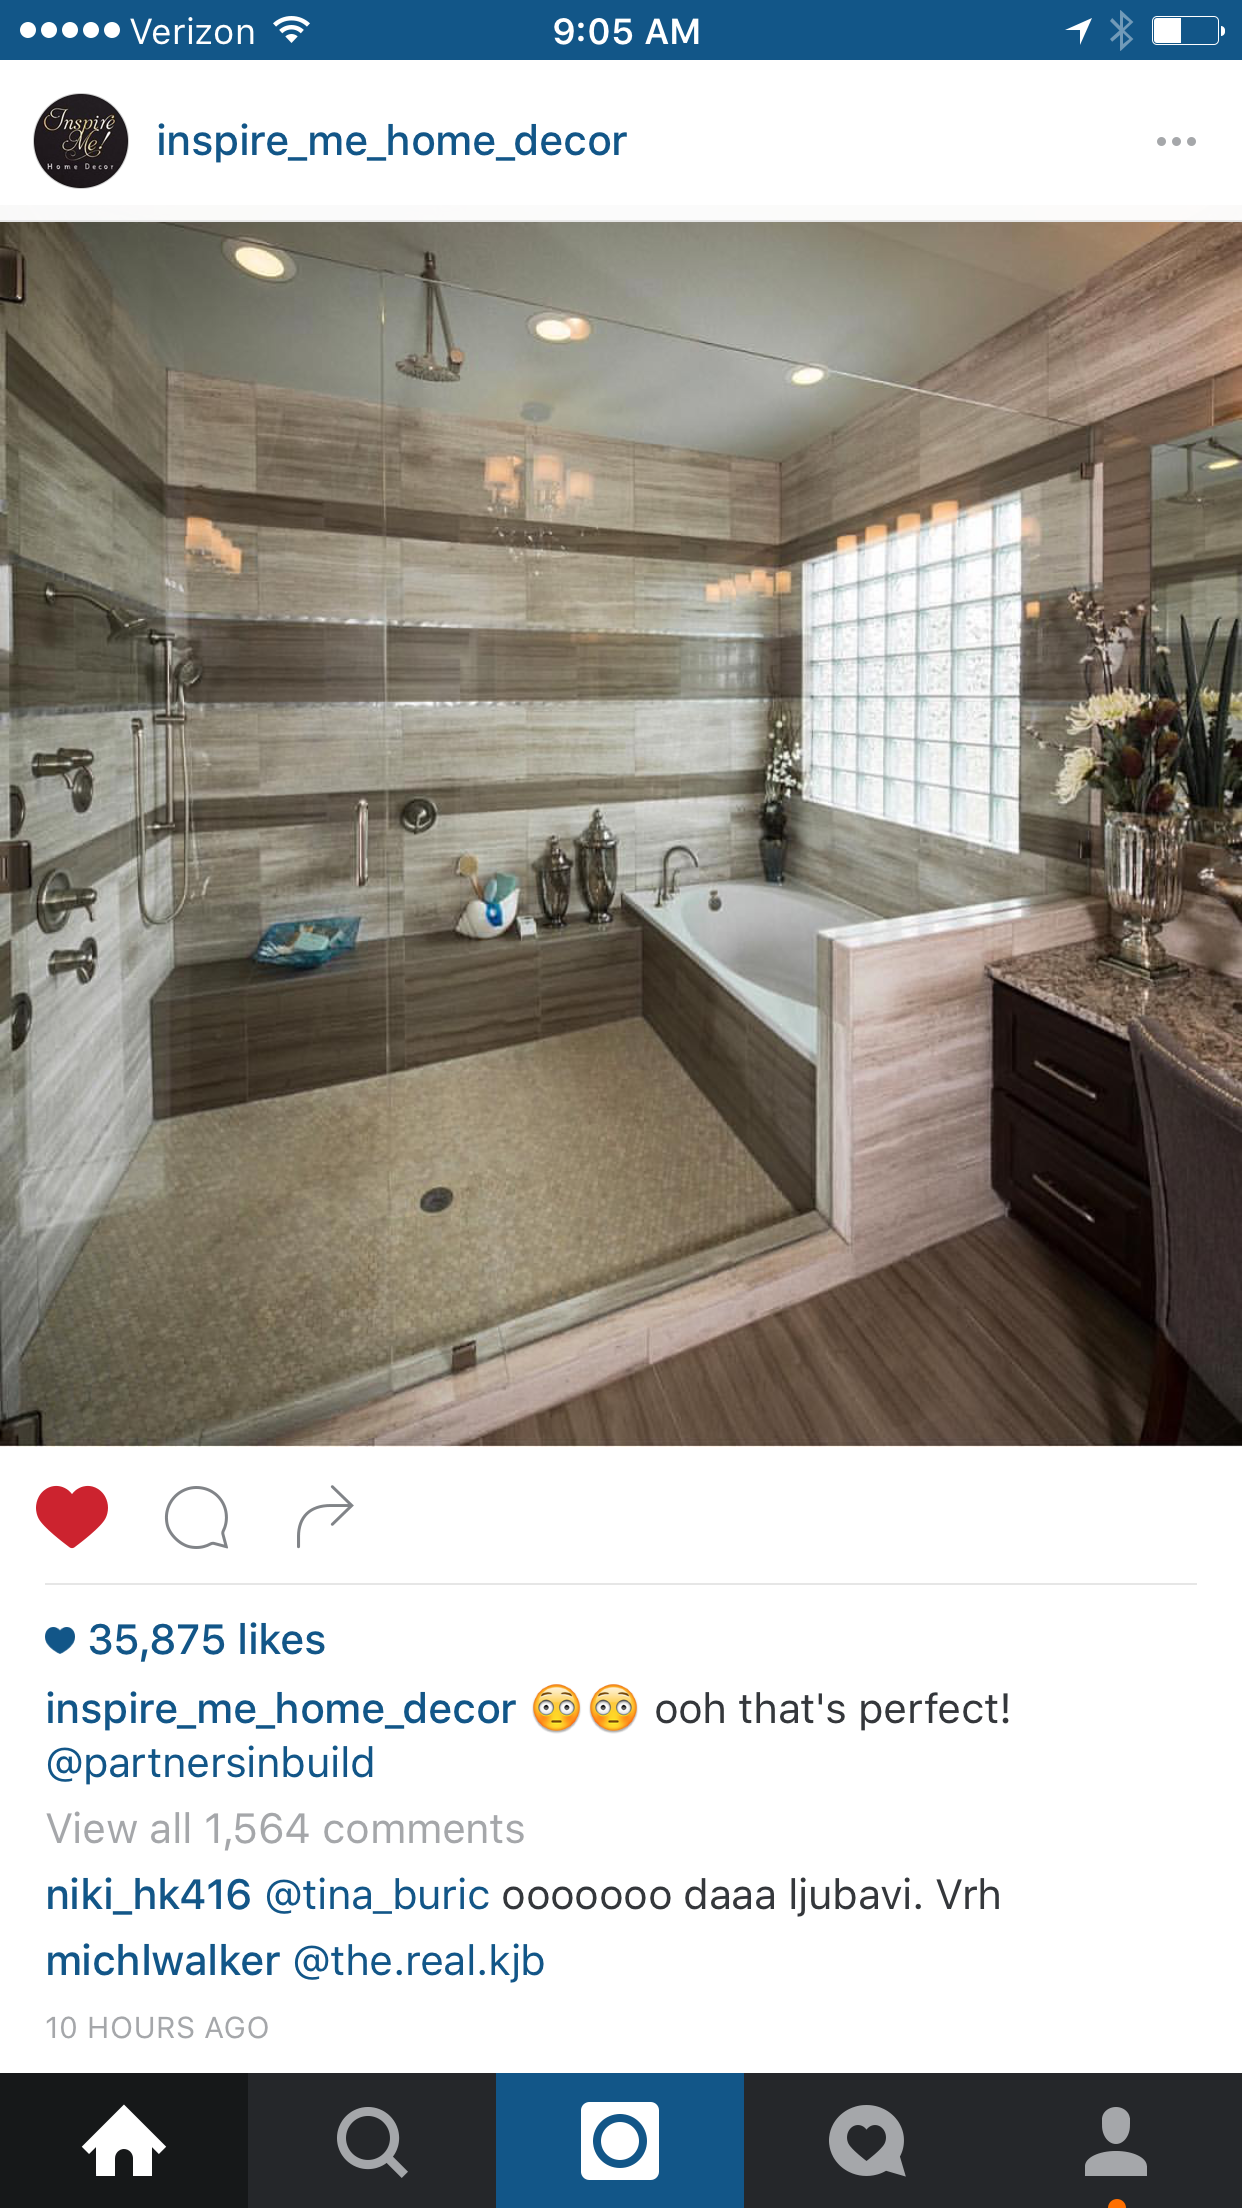 Area Bagno Box Doccia.I Love How The Bath Tub And Shower Are In The Same Area That S